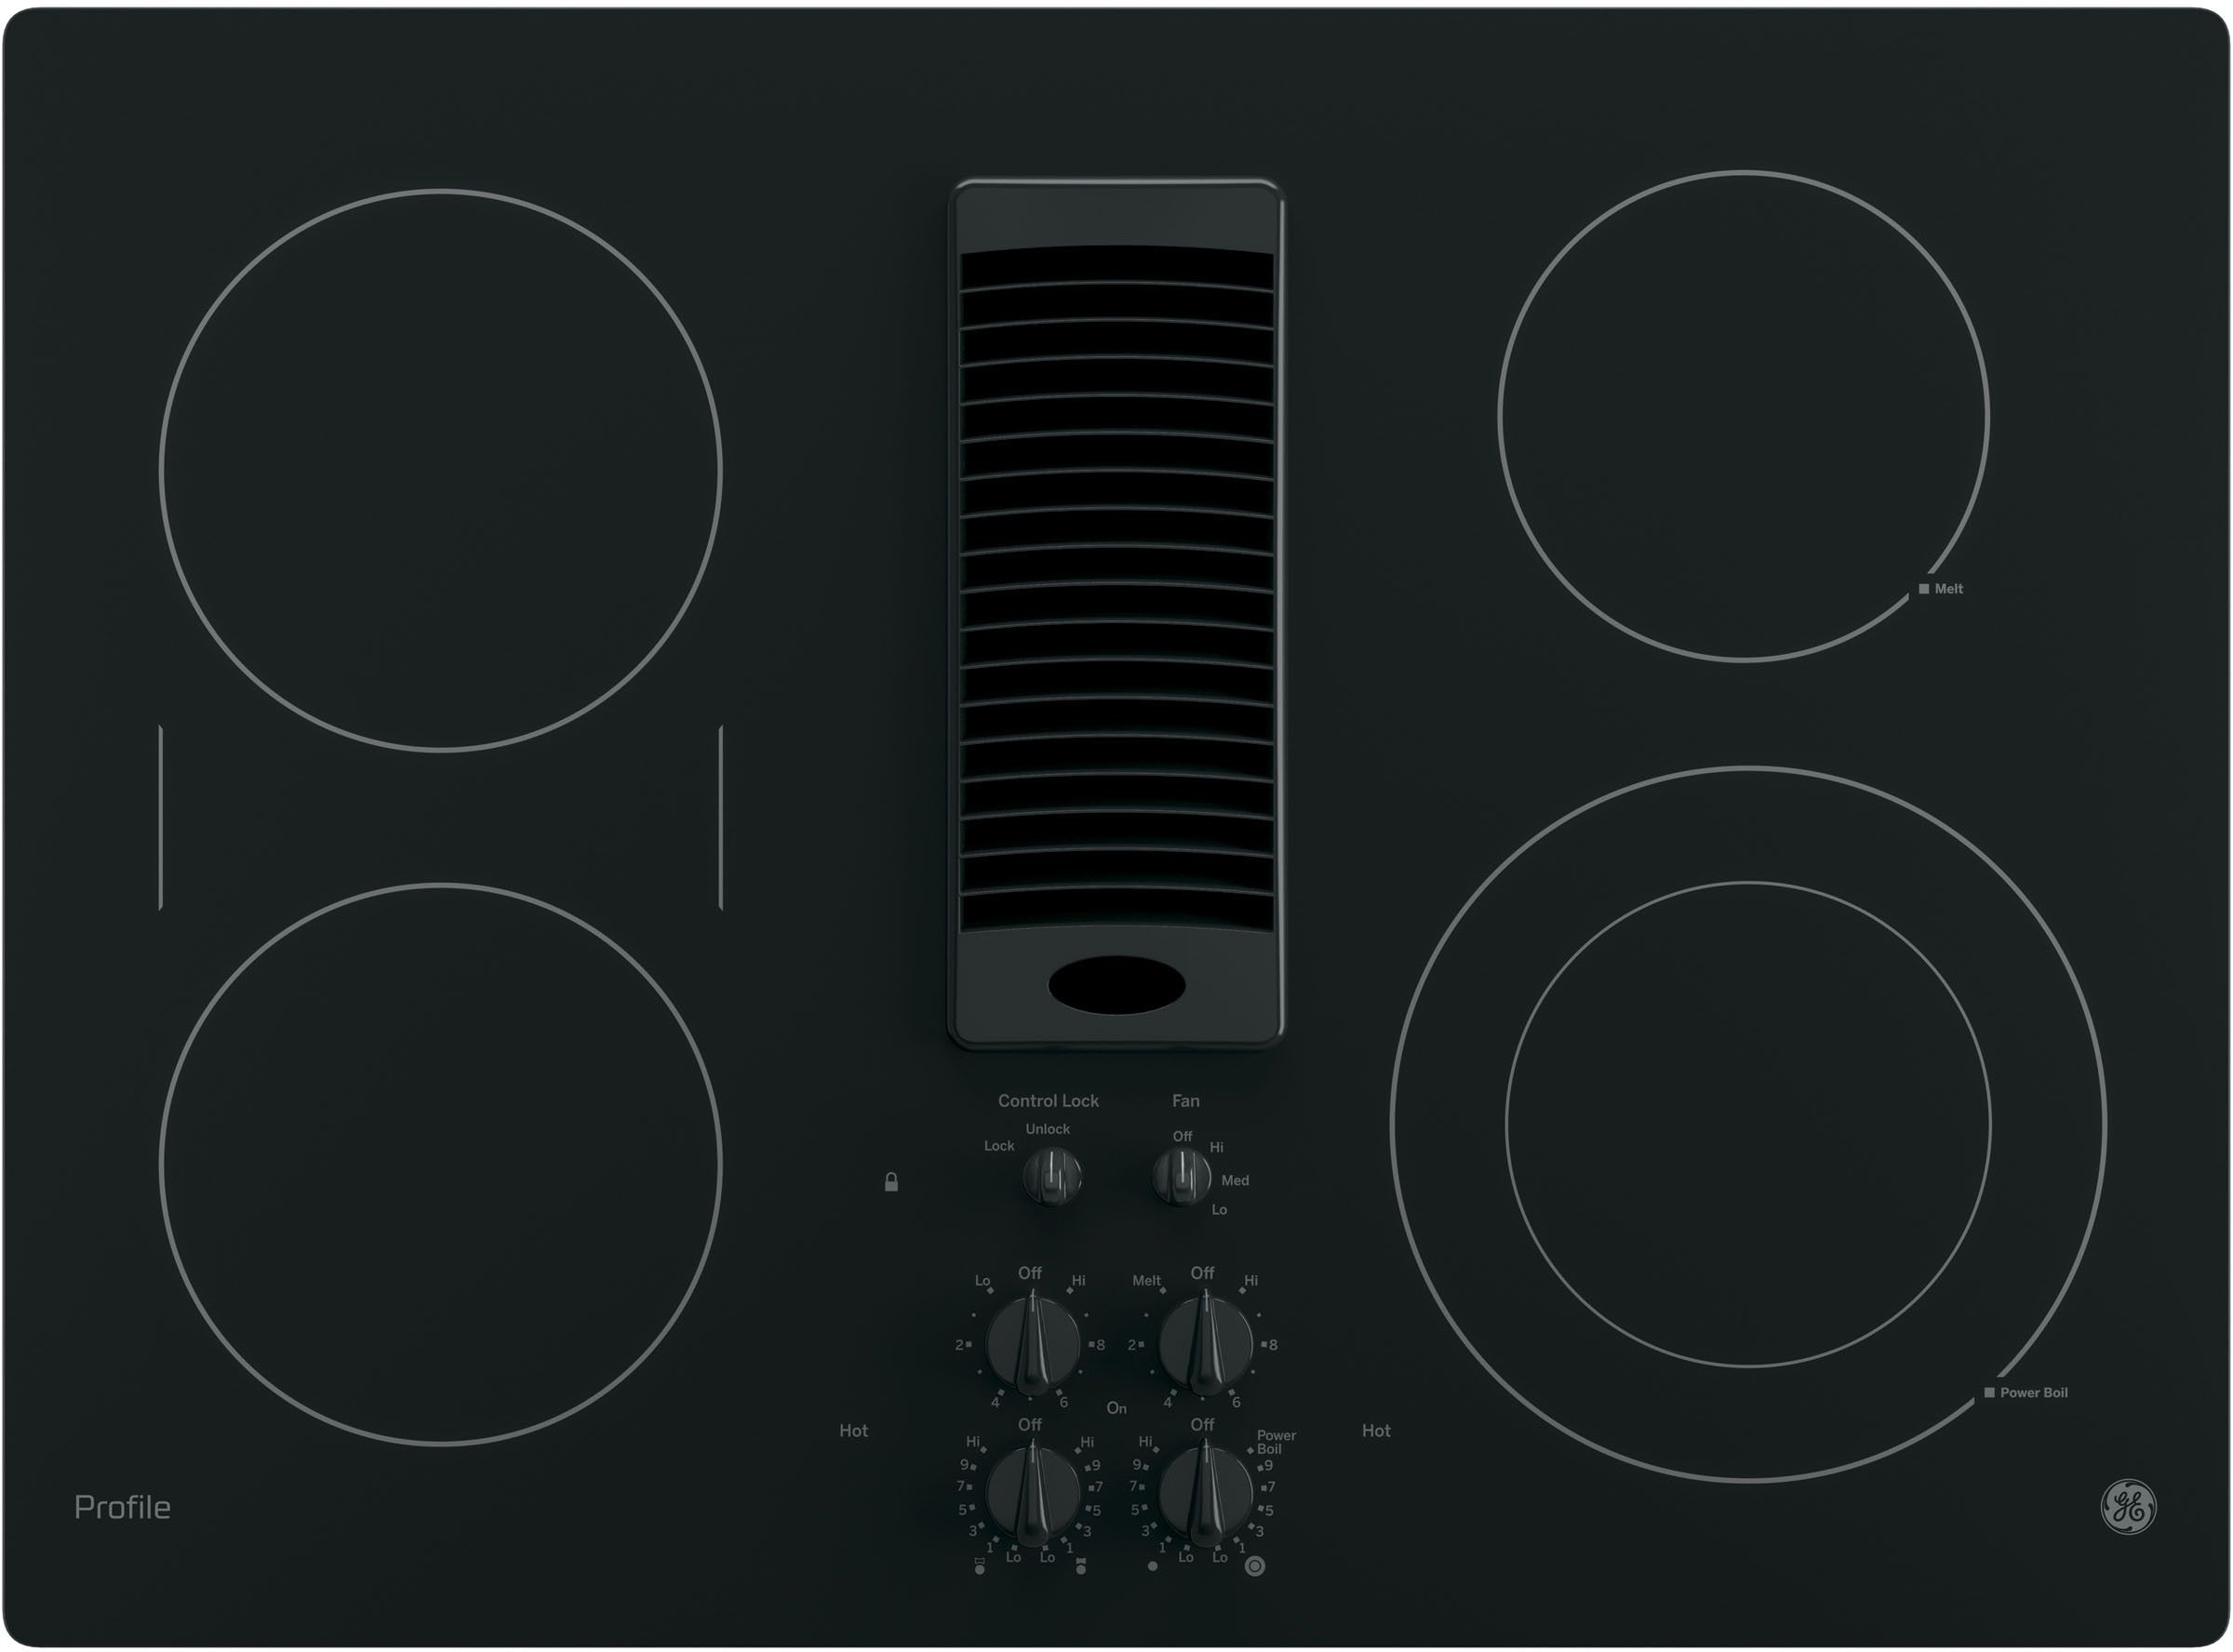 Suggested Replacements For Pp9830djbb In 2020 Electric Cooktop Downdraft Cooktop Cooktop